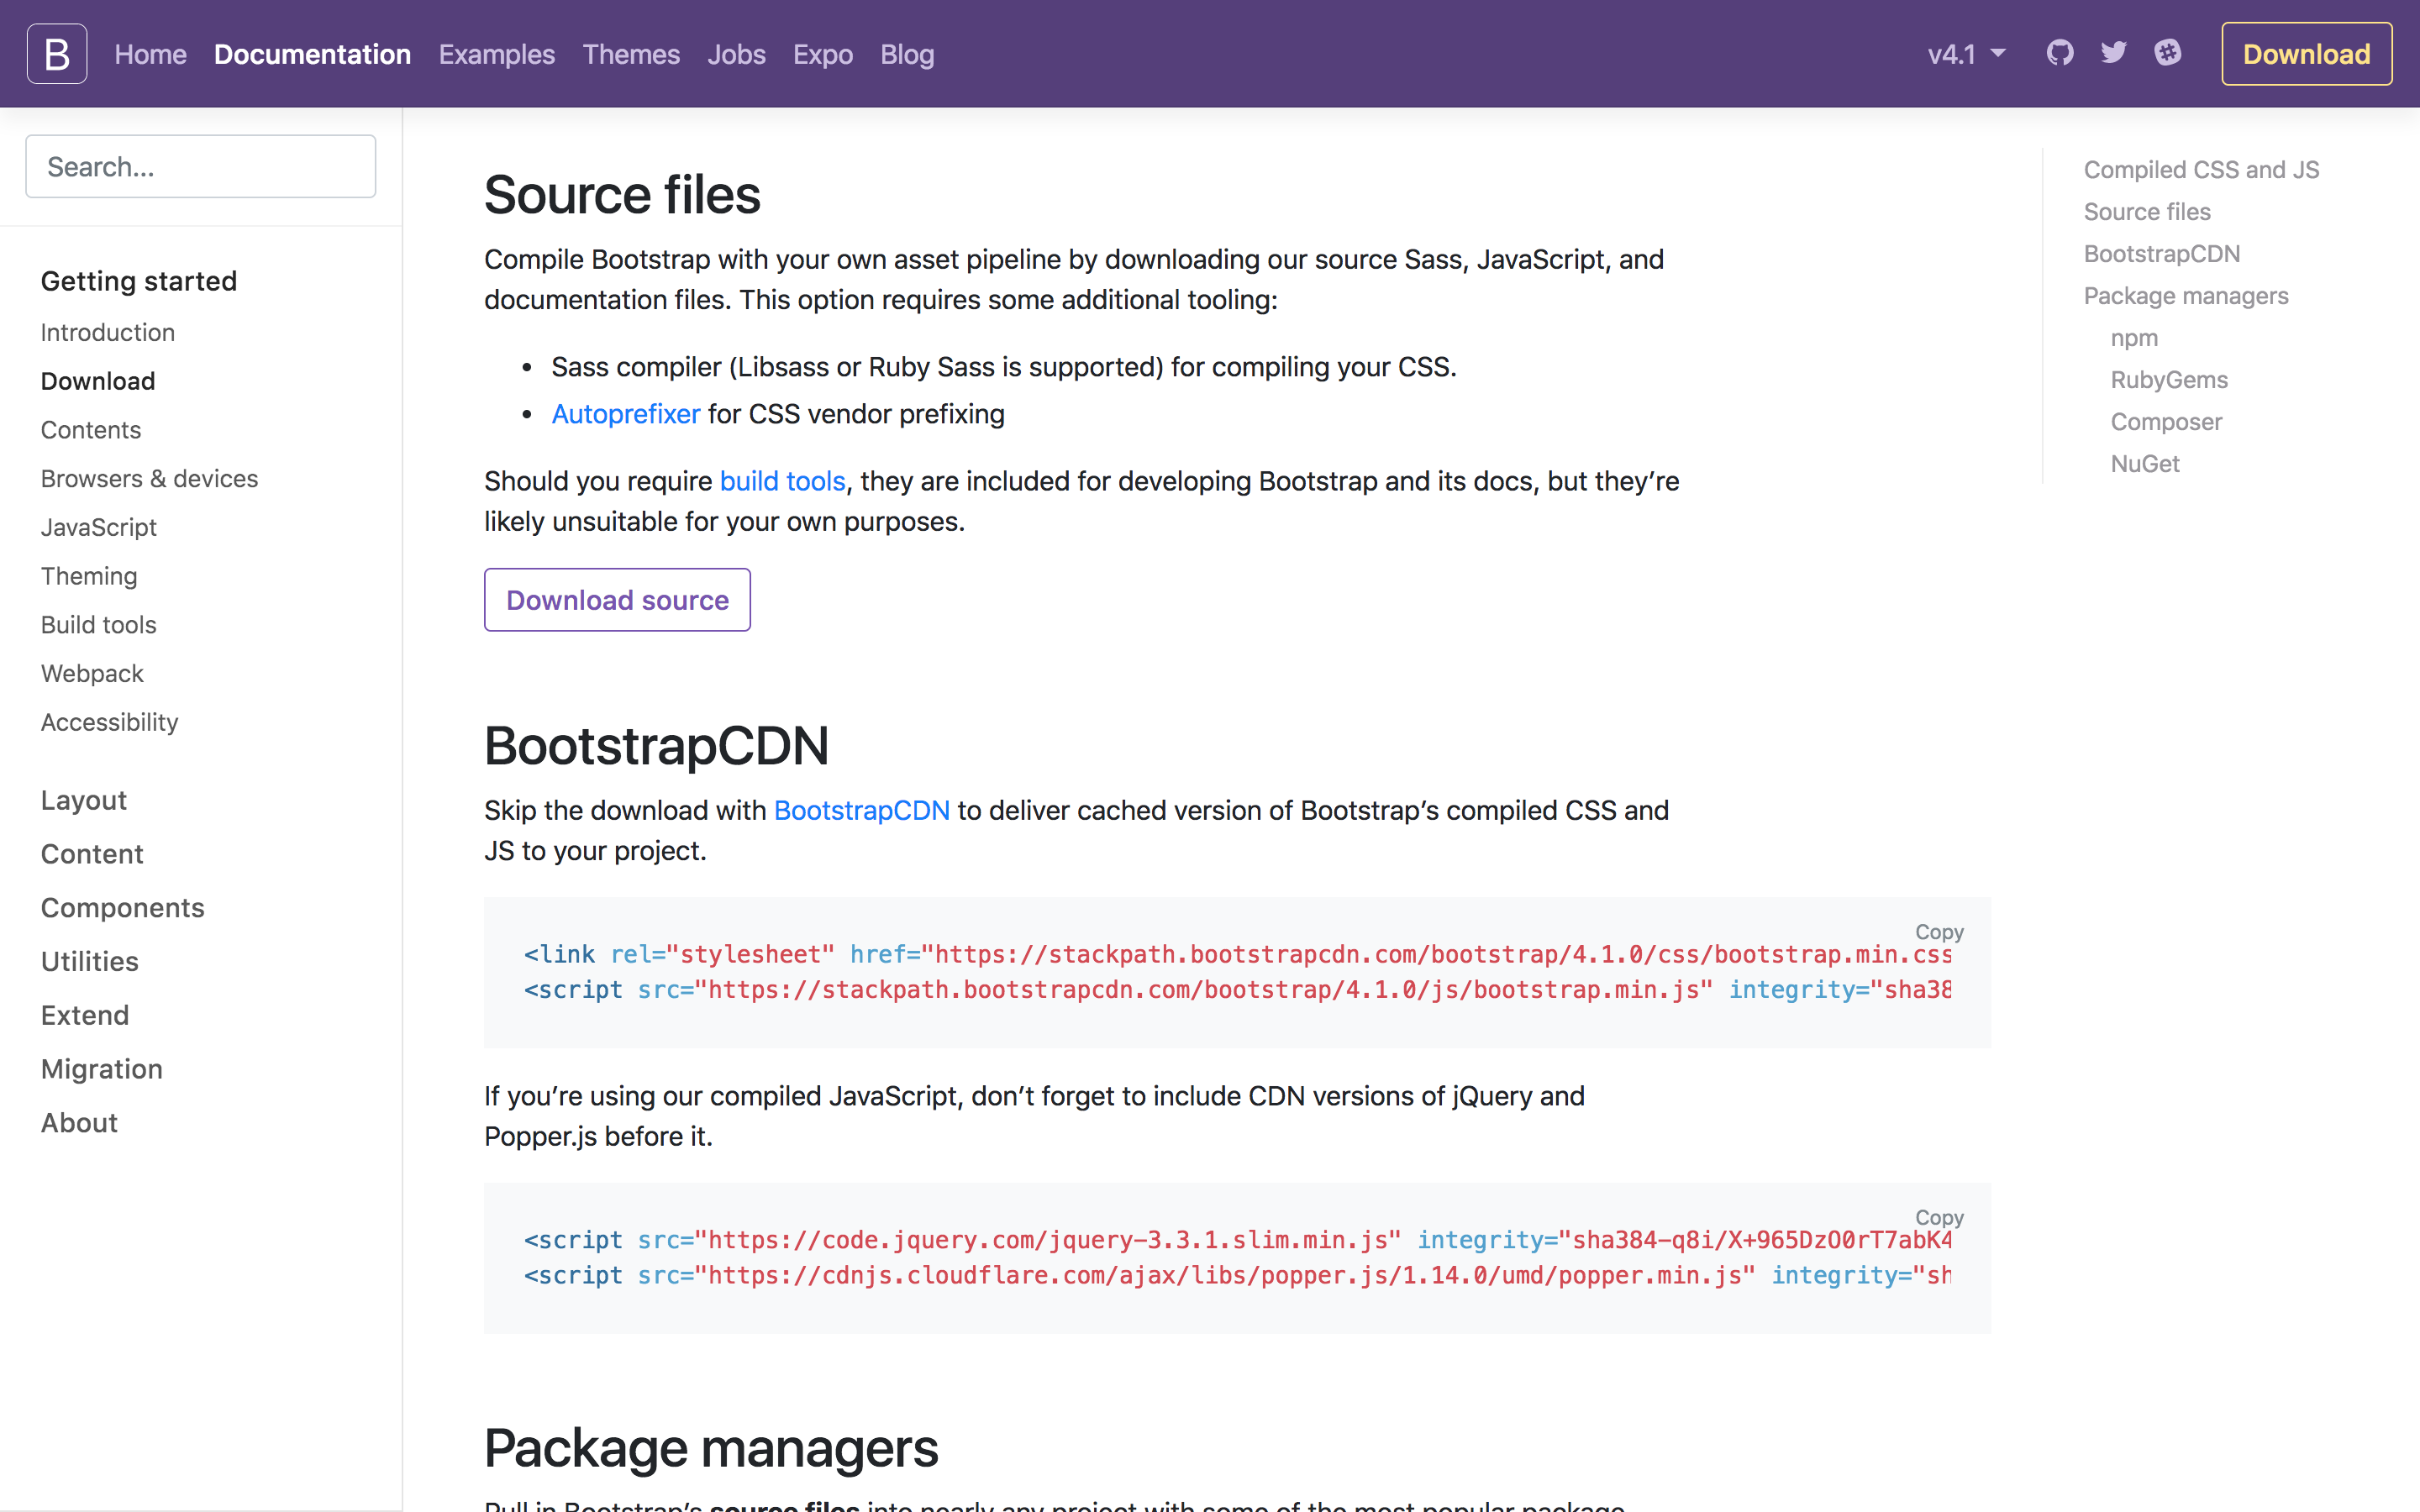 Bootstrap Installation 4 1 0: in case of error! | Full Pipe